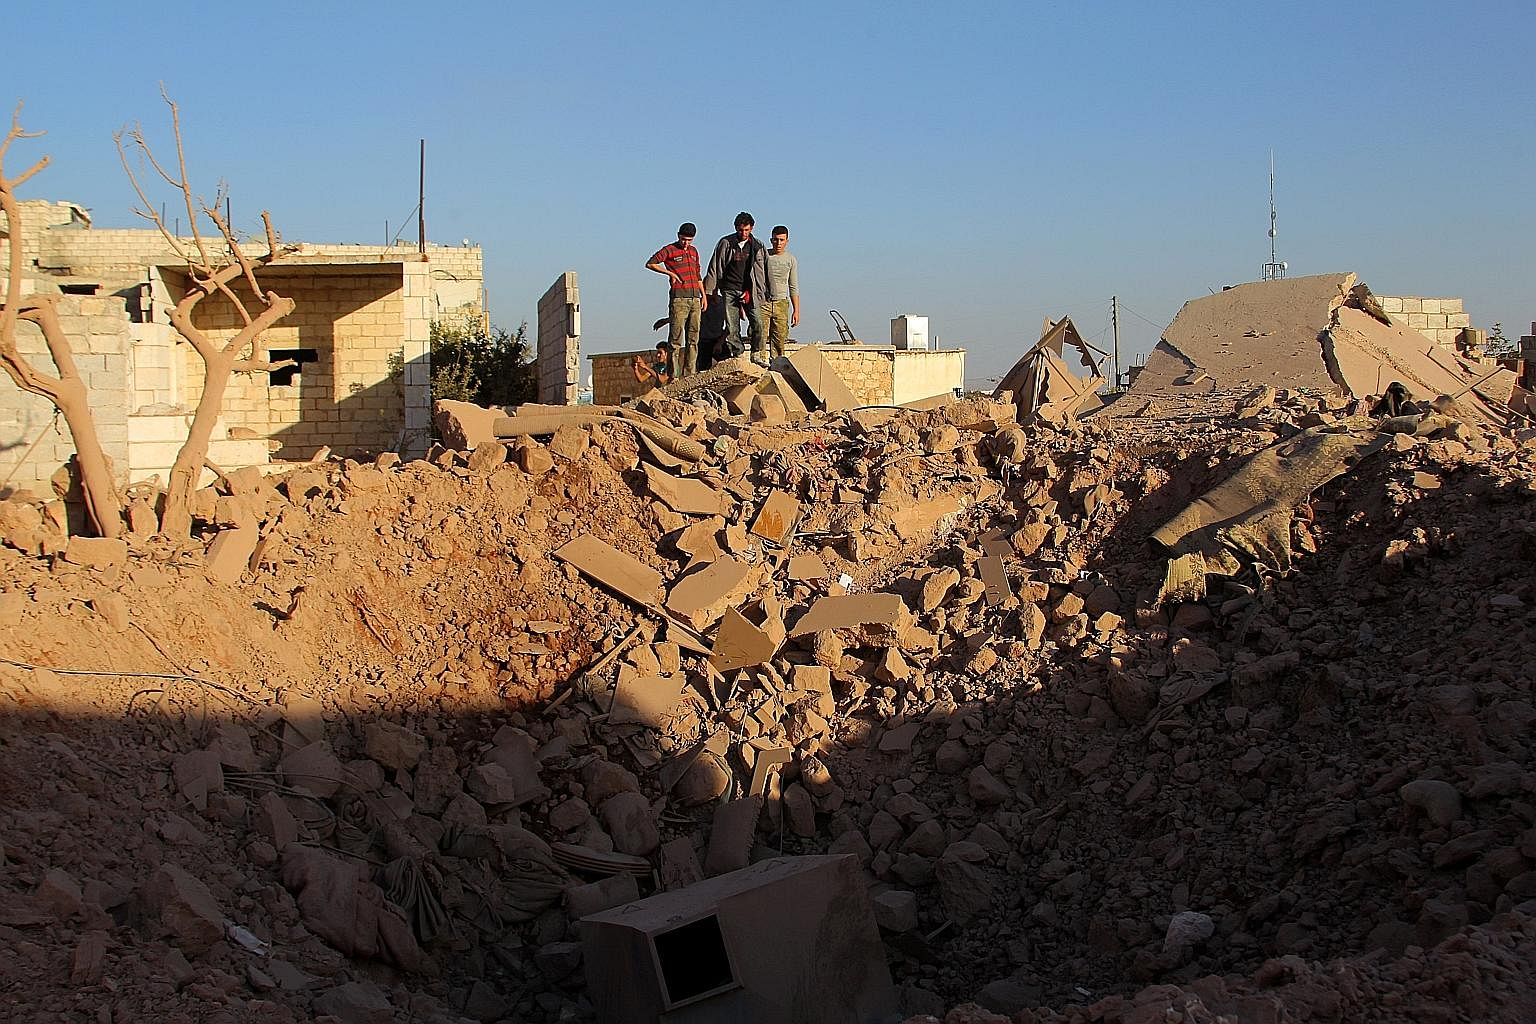 People inspecting an air strike's aftermath in the Syrian rebel-held village of Owaijel on Monday. In addition to military operations in the Middle East, the US must direct foreign policy in the middle of a markedly bitter election.